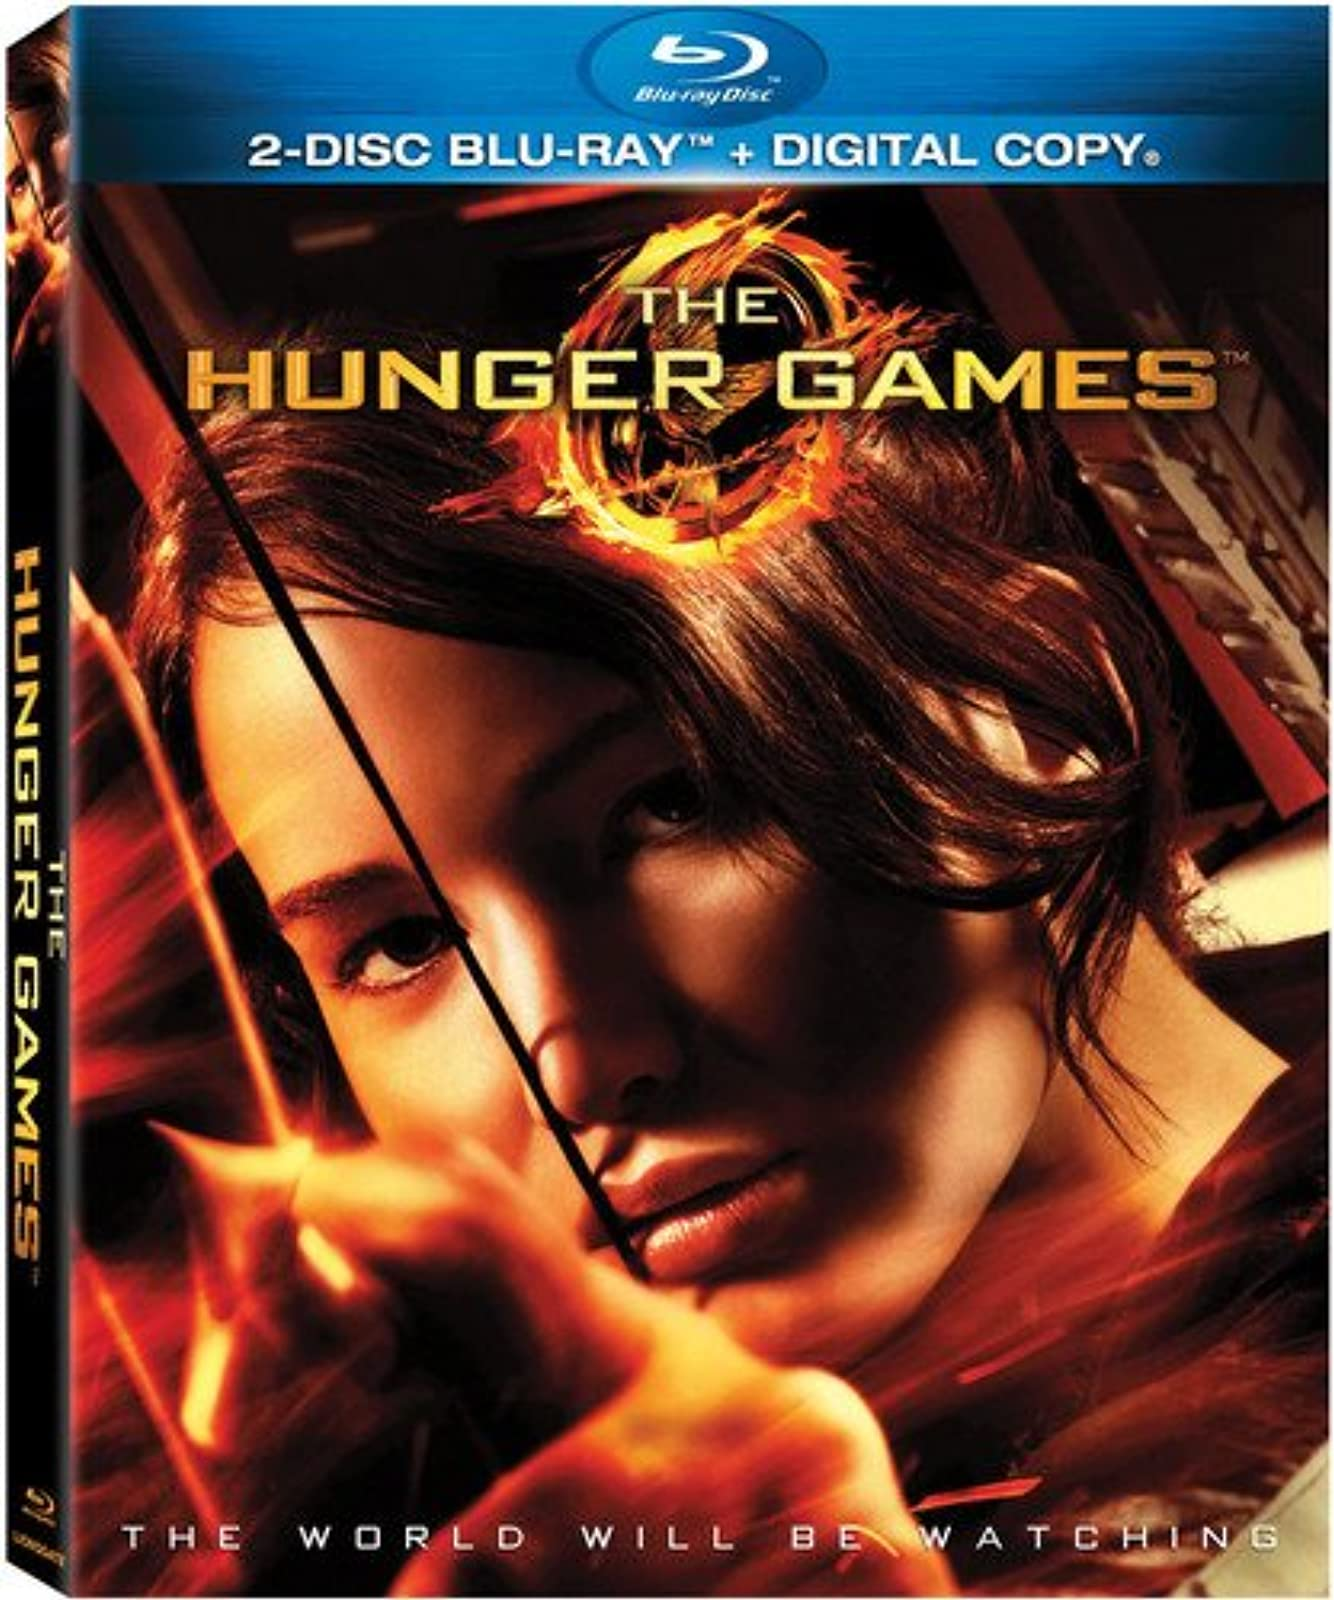 The Hunger Games Blu-Ray 2012 On Blu-Ray With Jennifer Lawrence